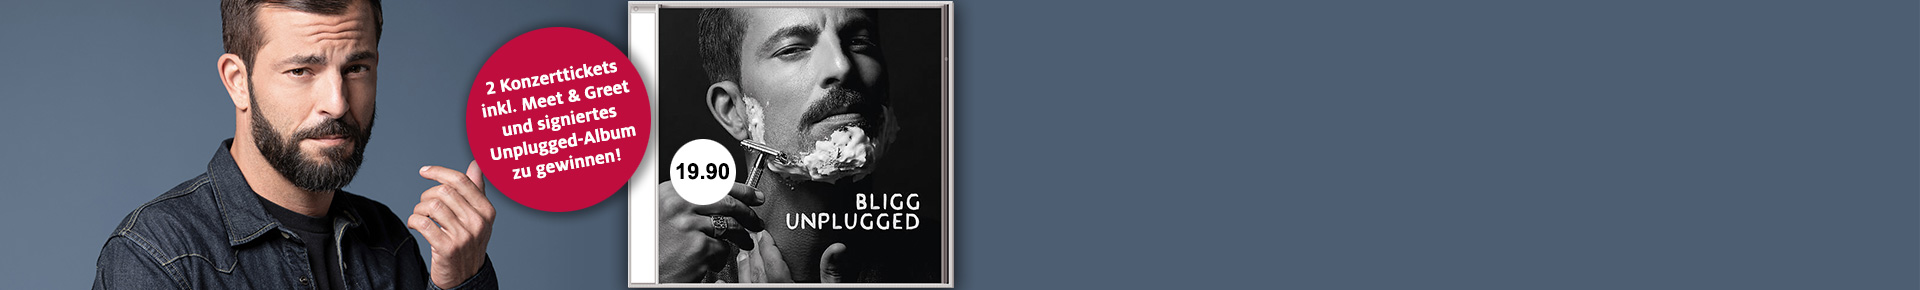 Bligg Unplugged